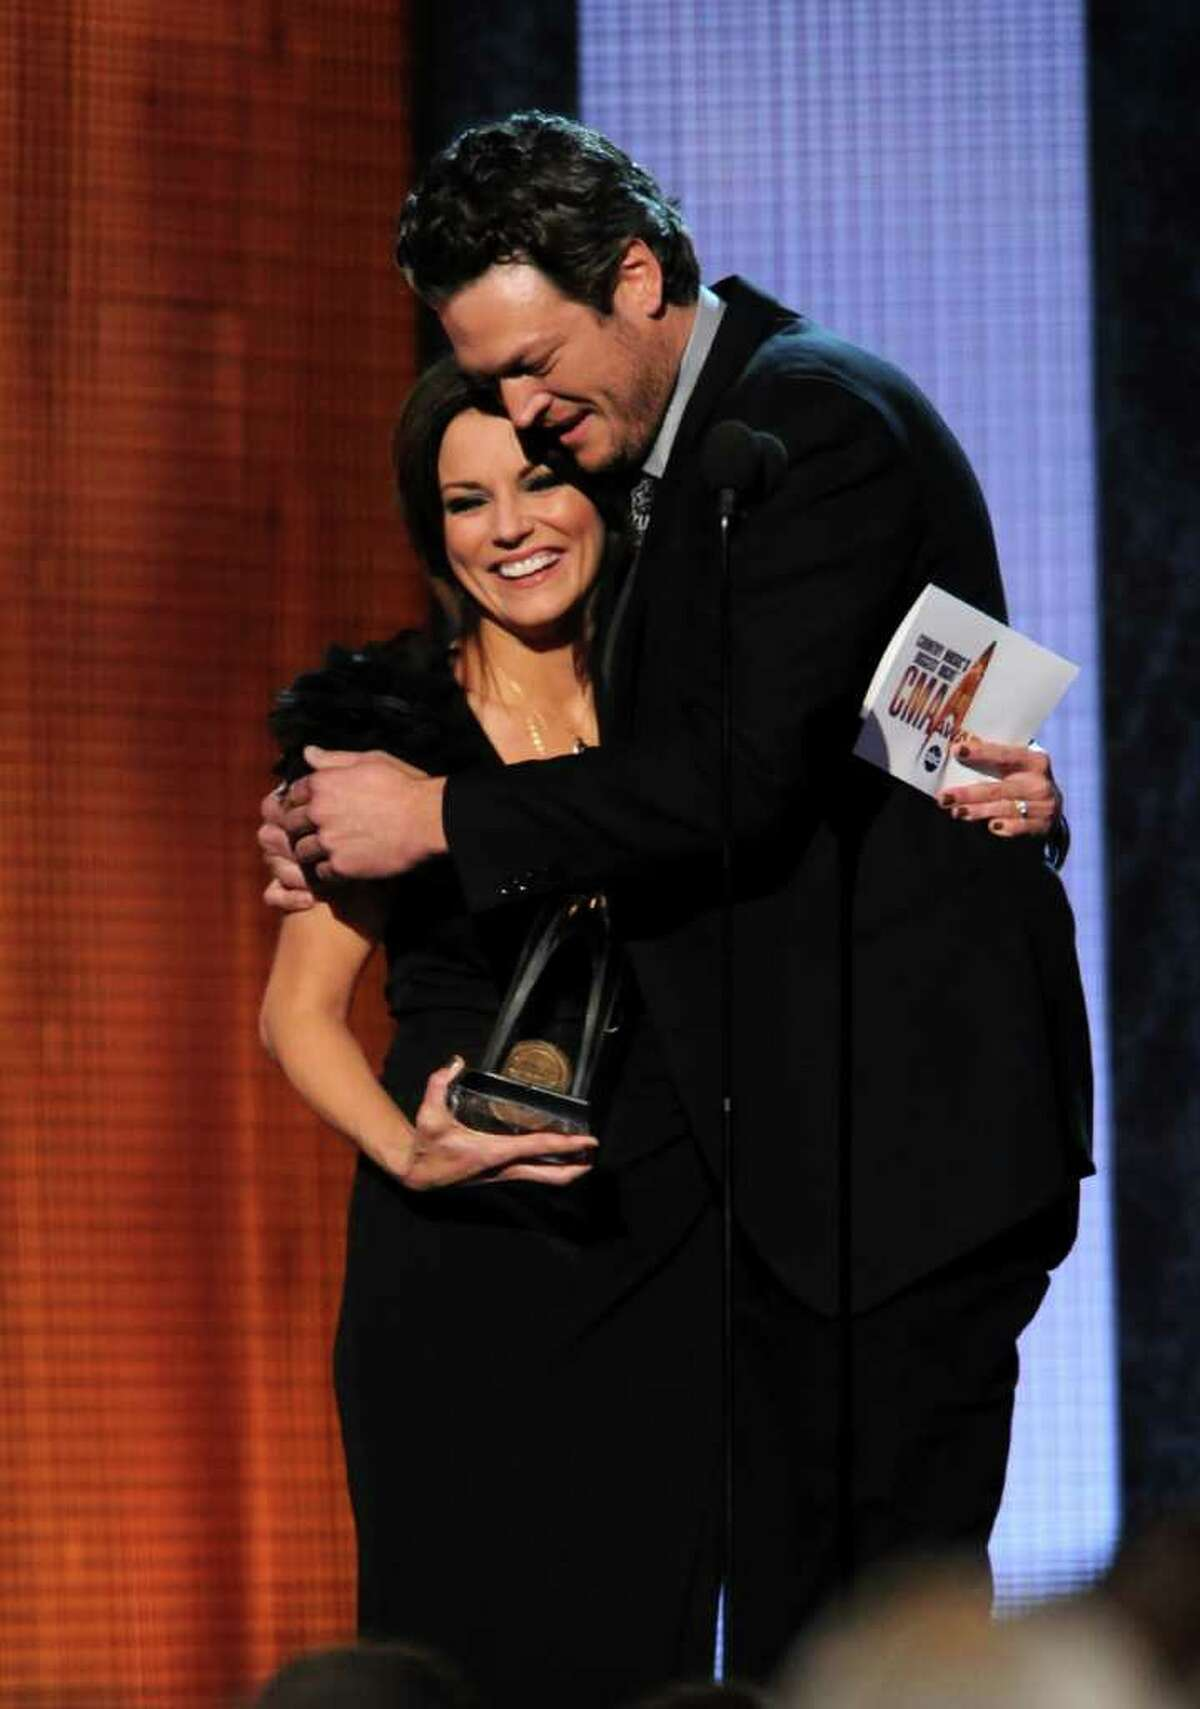 NASHVILLE, TN - NOVEMBER 10: Martina McBride presents award for Male Vocalist of the Year to Blake Shelton at the 44th Annual CMA Awards at the Bridgestone Arena on November 10, 2010 in Nashville, Tennessee. (Photo by Rick Diamond/Getty Images) *** Local Caption *** Martina McBride;Blake Shelton